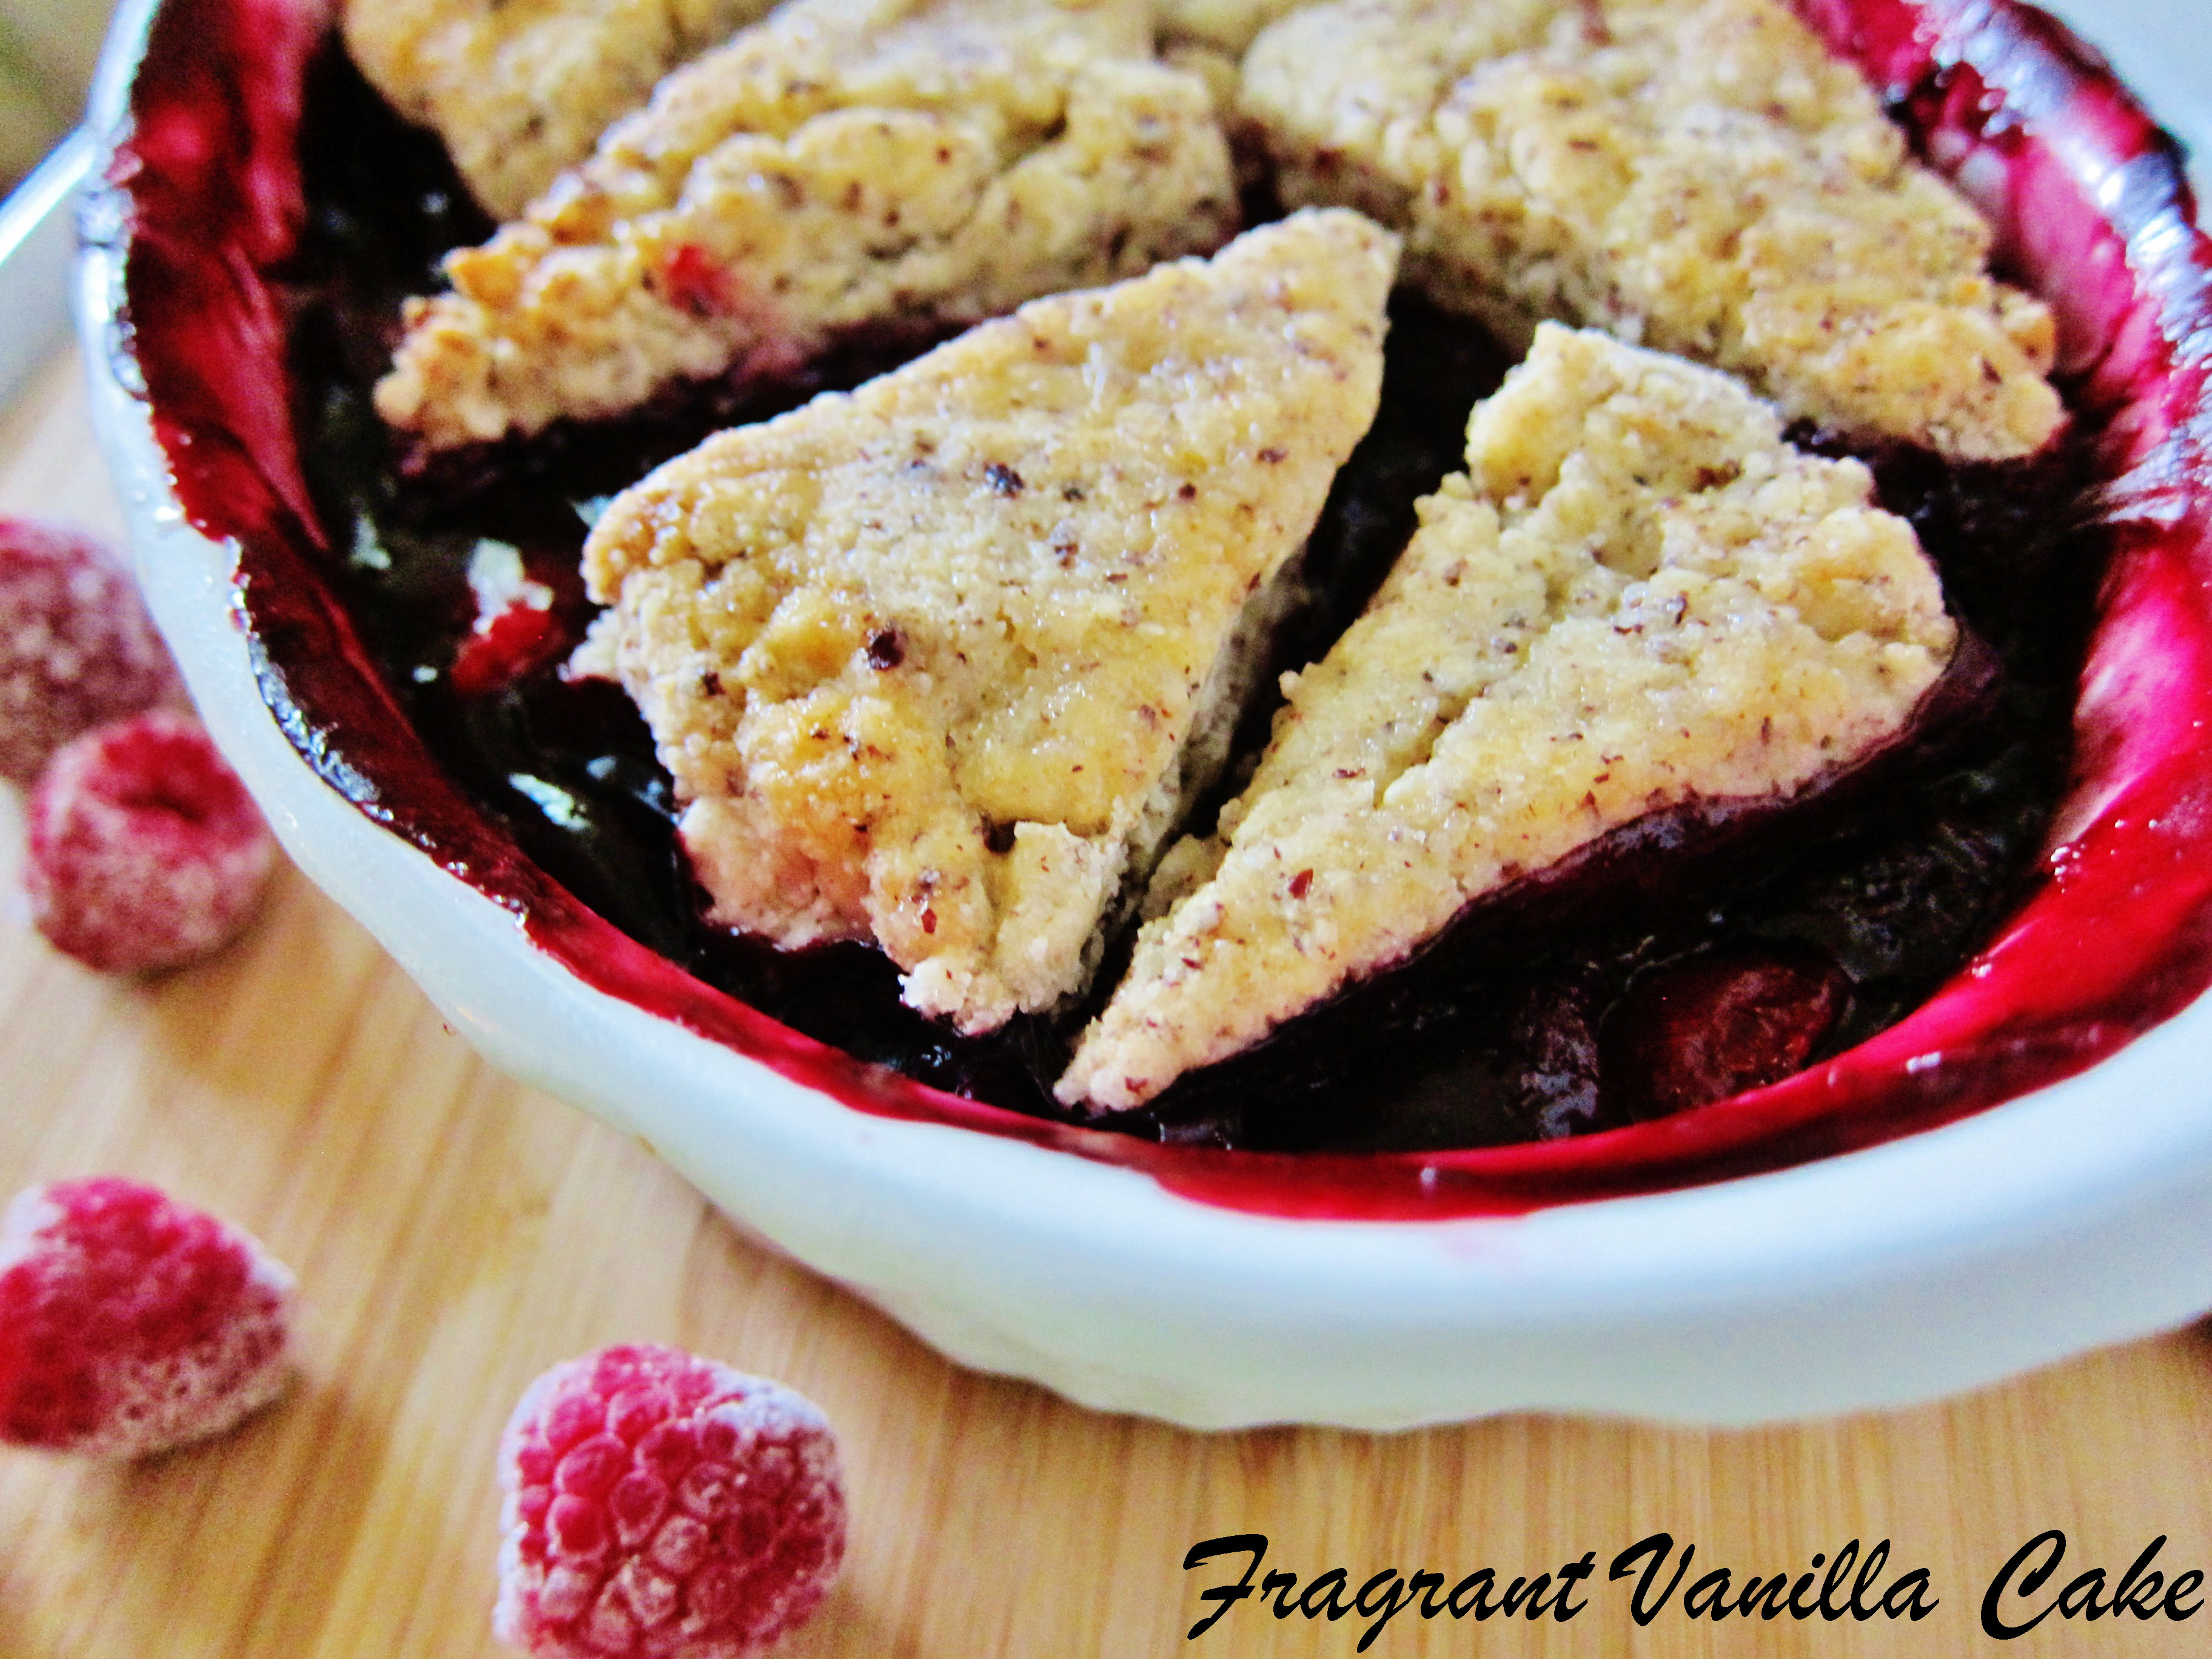 Vegan Triple Berry Cobbler with Hazelnut Biscuits